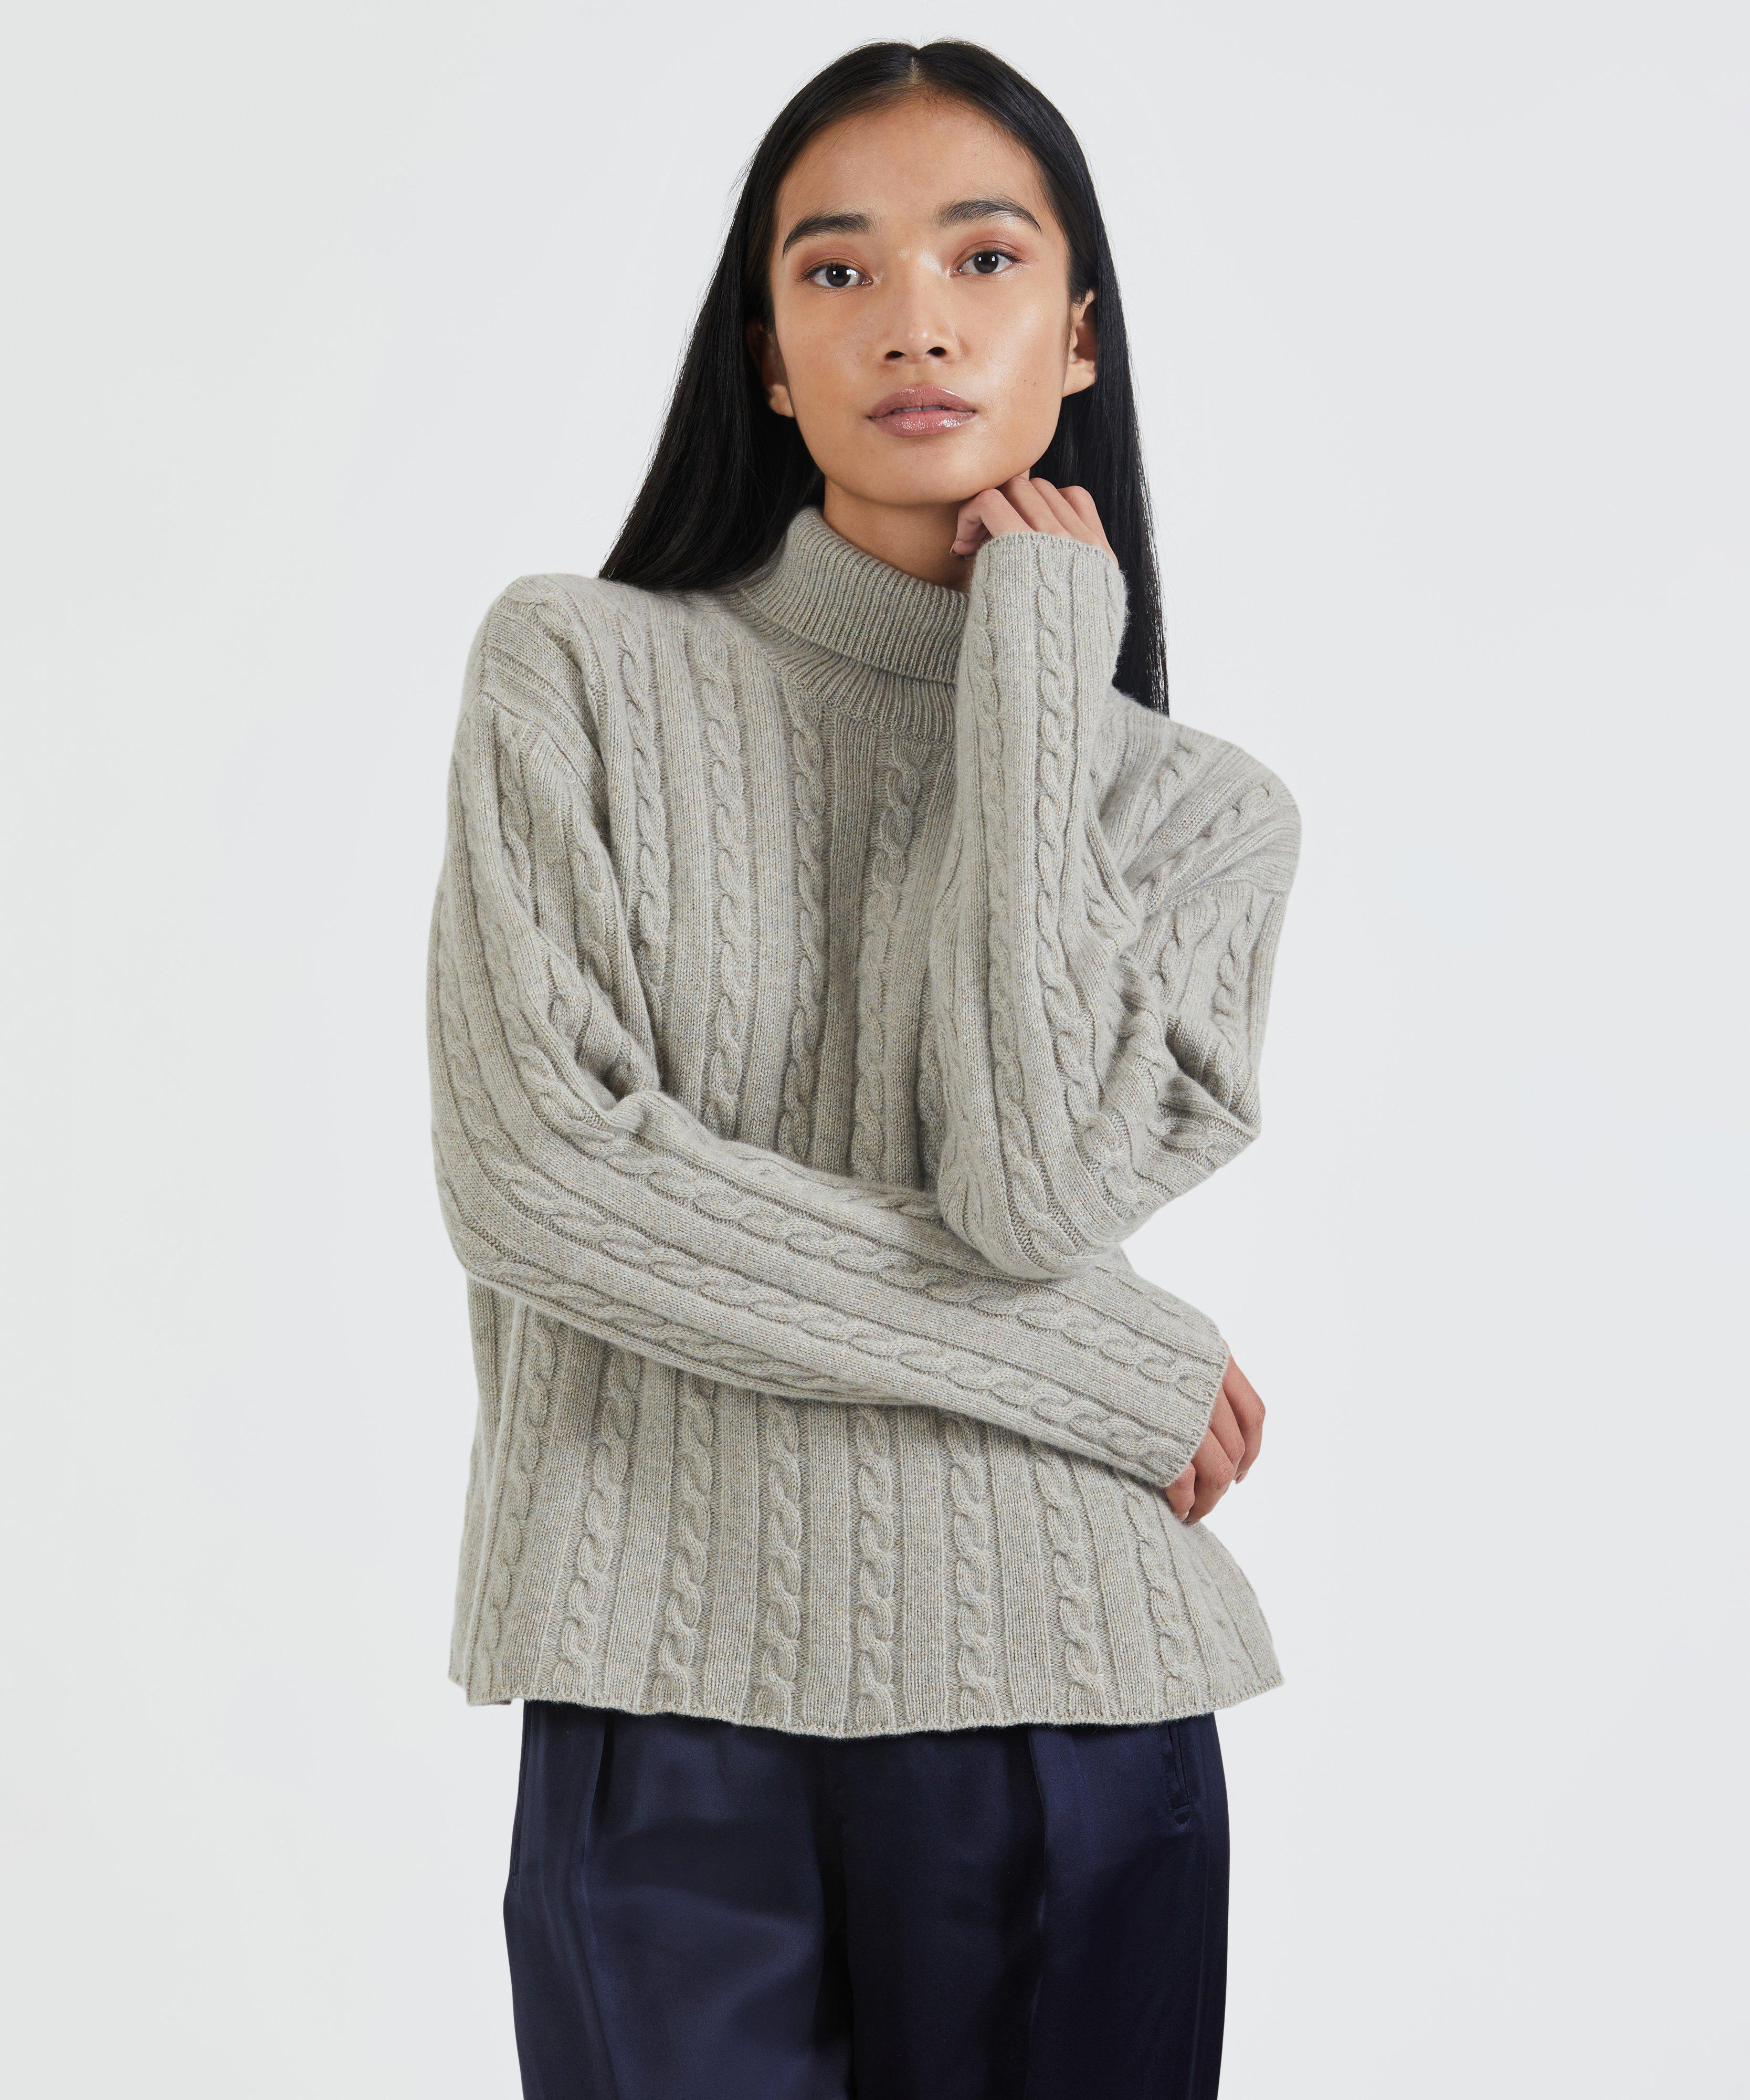 Luxe Wool Cashmere Cable Knit Turtleneck Sweater - Pumice